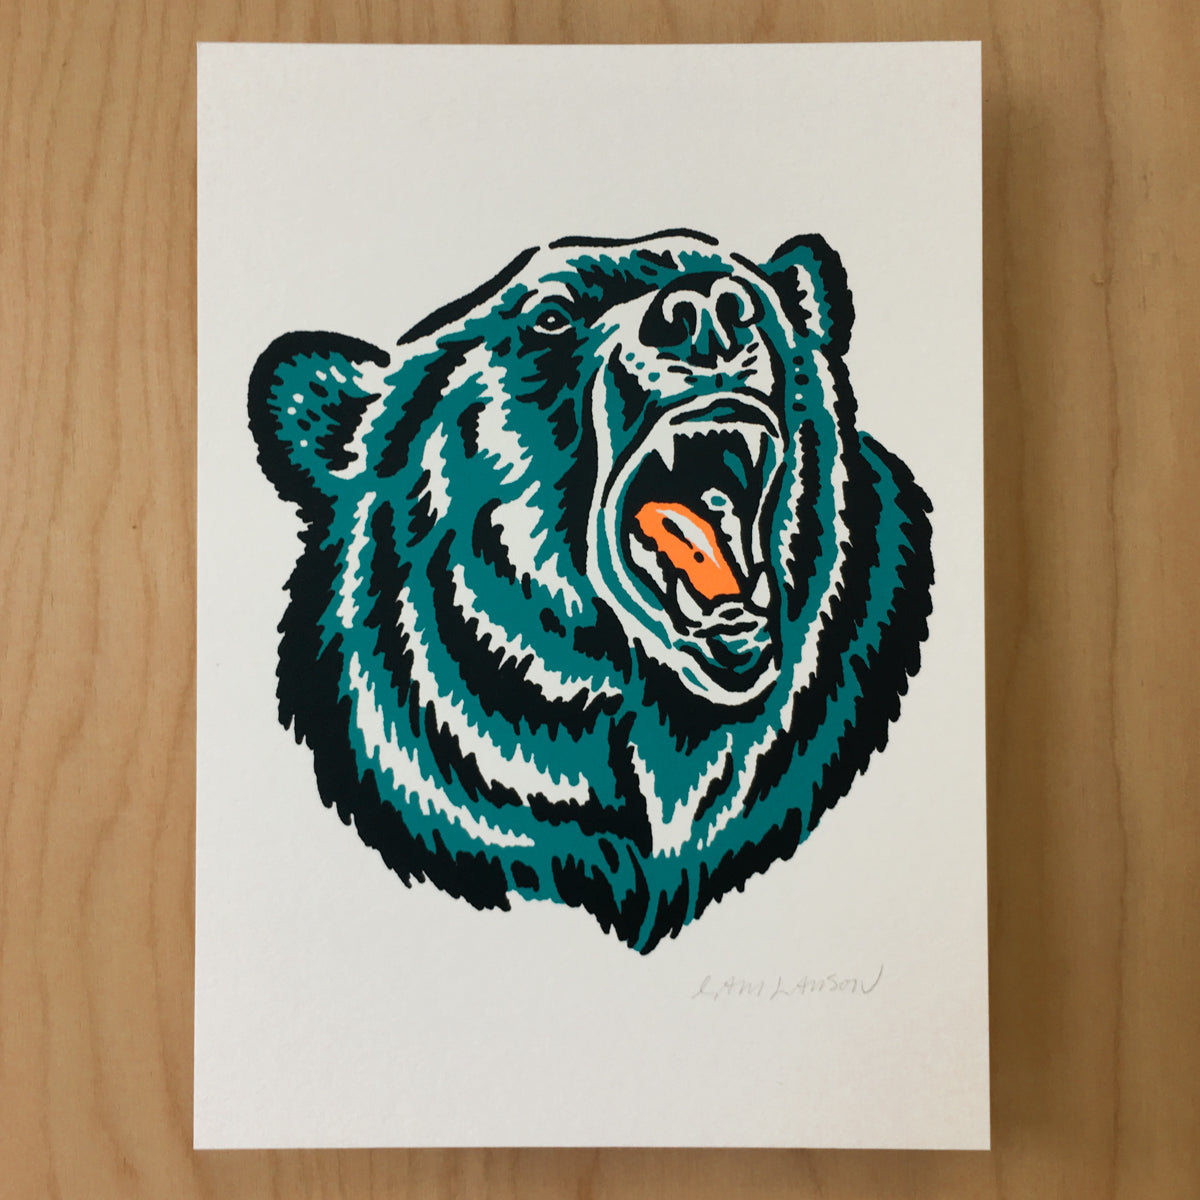 Growling Grizzly Signed Print #161